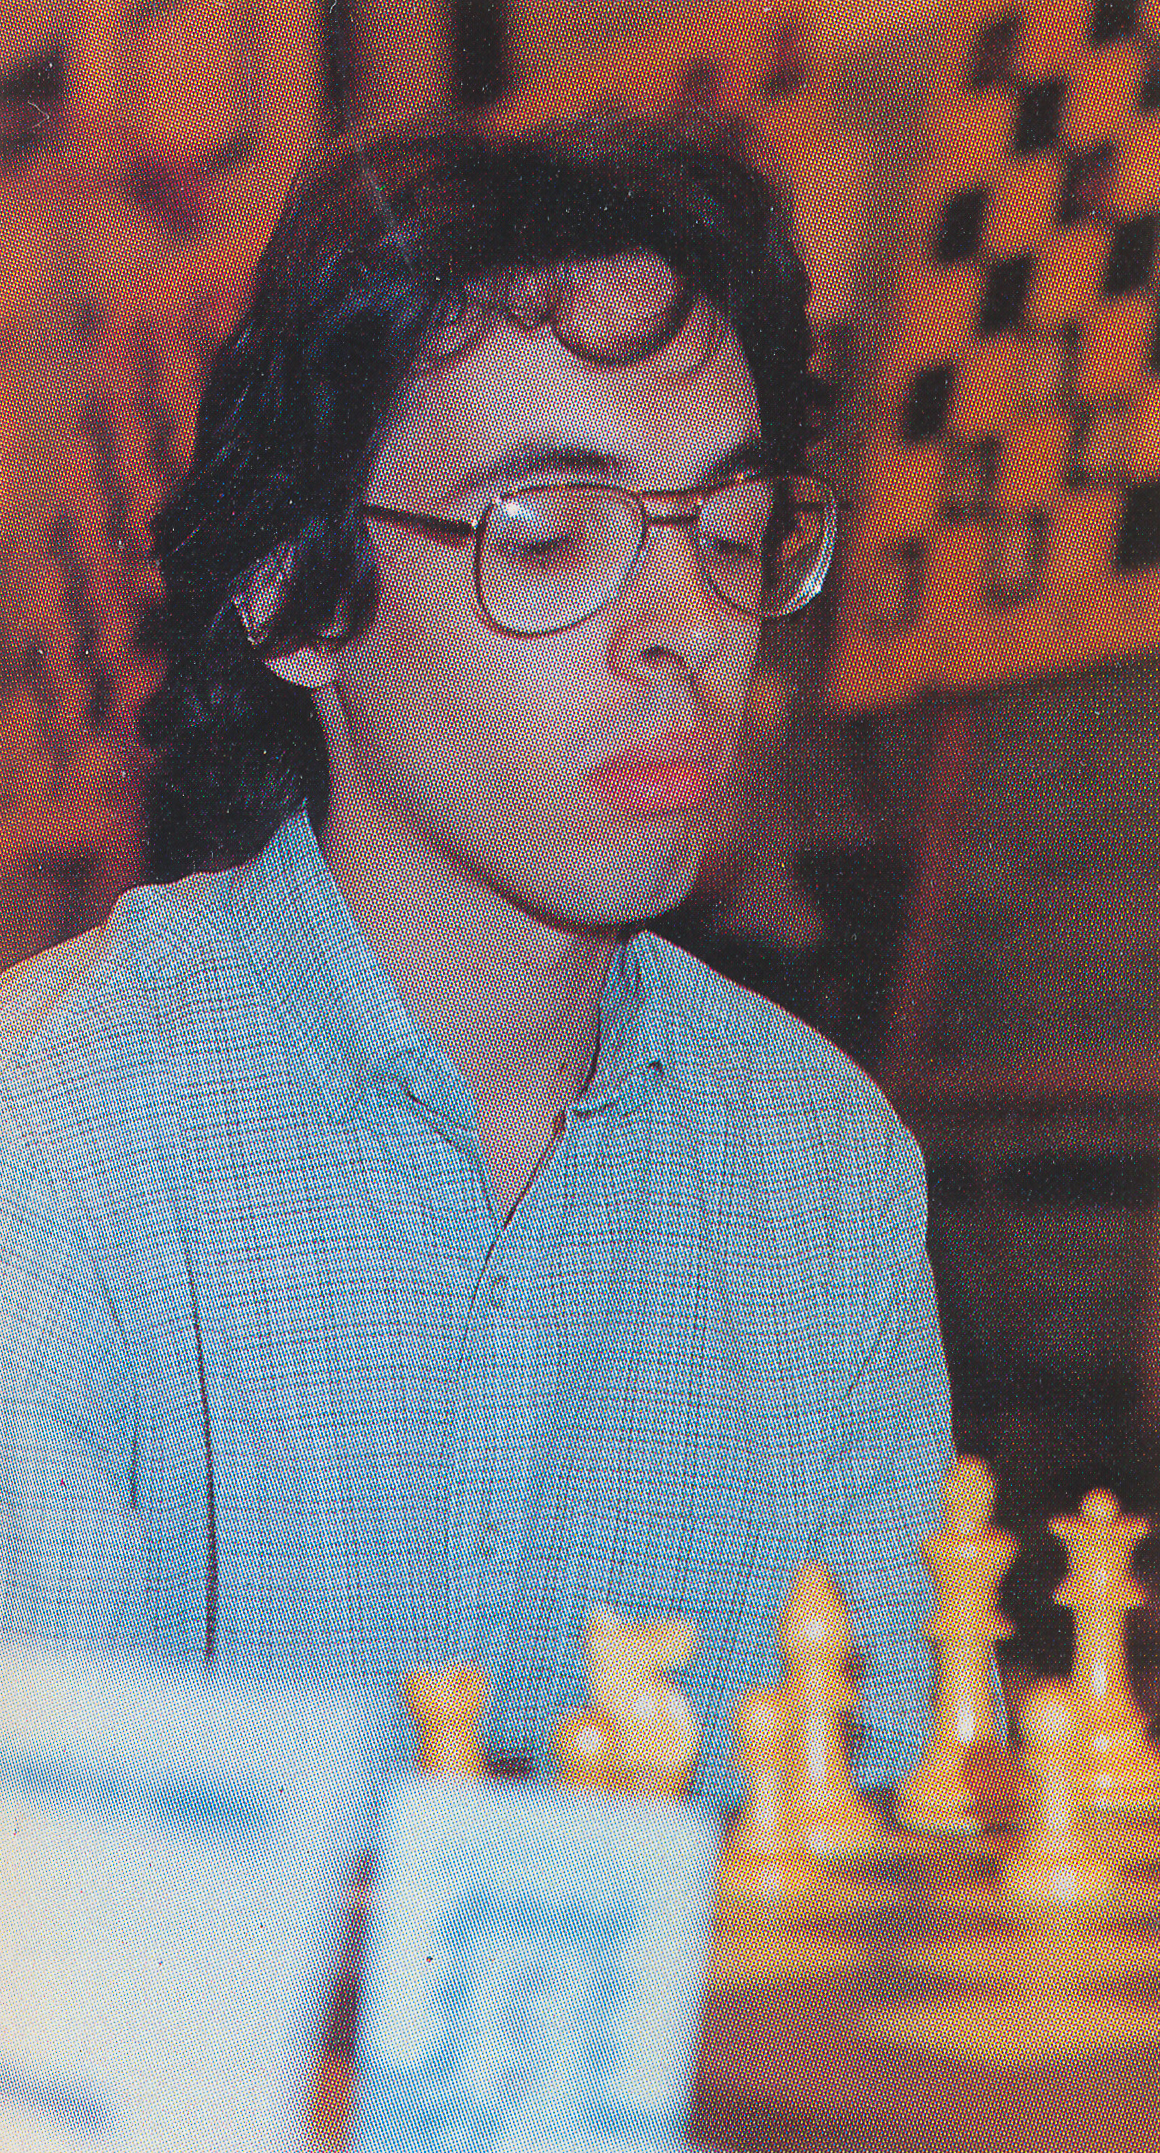 IM Shaun Taulbut, Source : Guinness Chess The Records (1986)